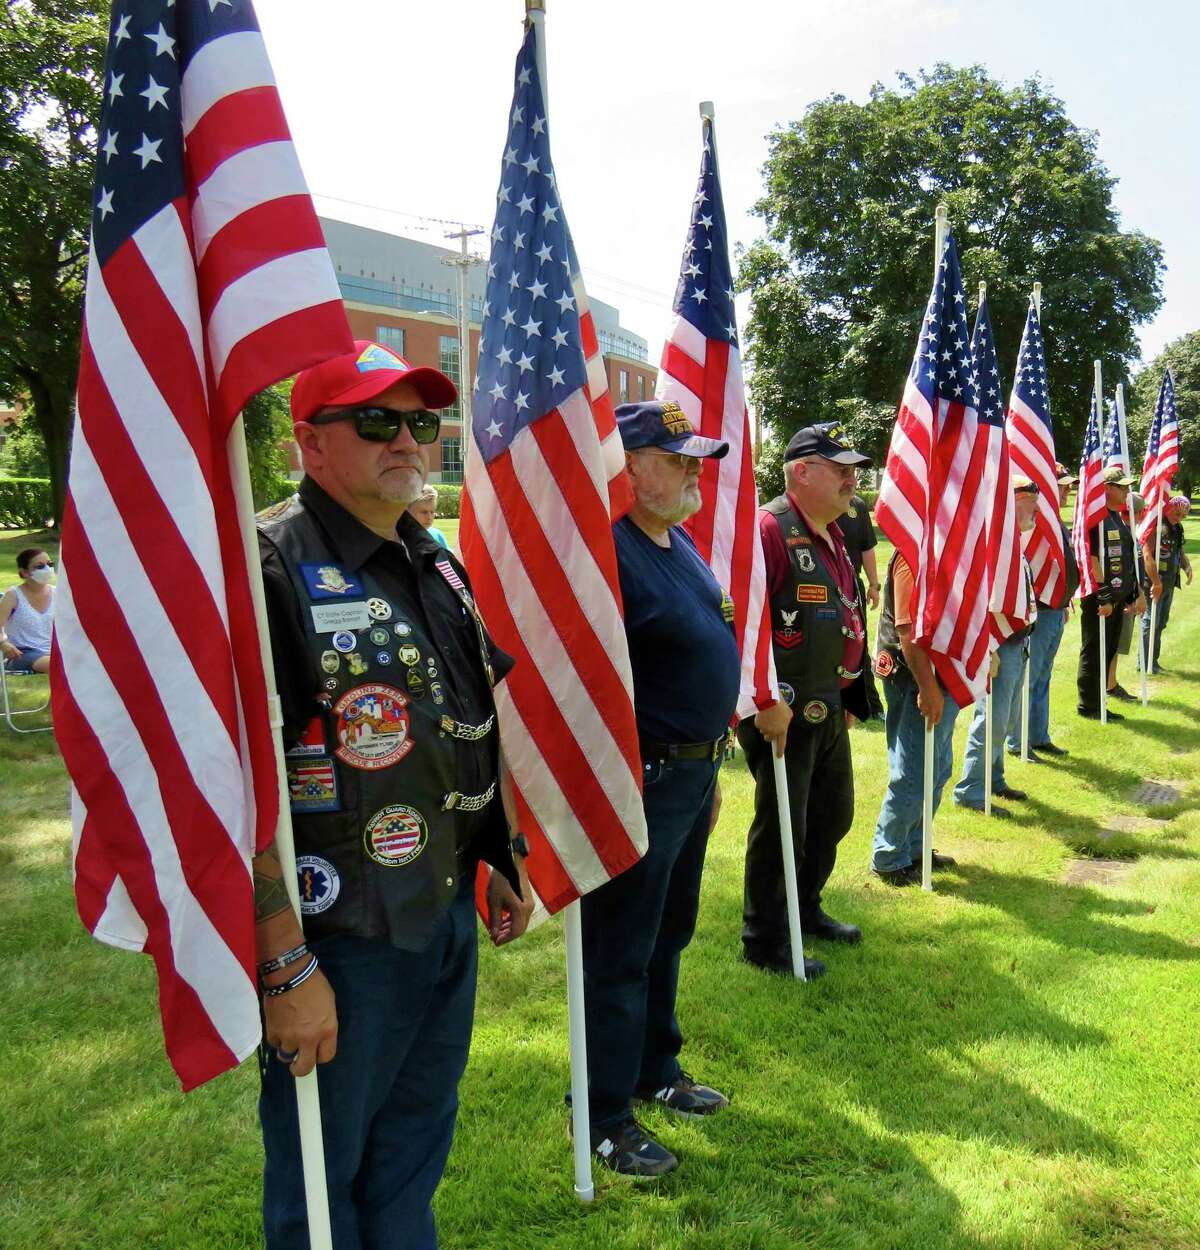 The Connecticut Patriot Guard Riders at the military funeral for Sgt. John E. Hurlburt, who was killed in action during World War II, and laid to rest last Saturday in New Haven.